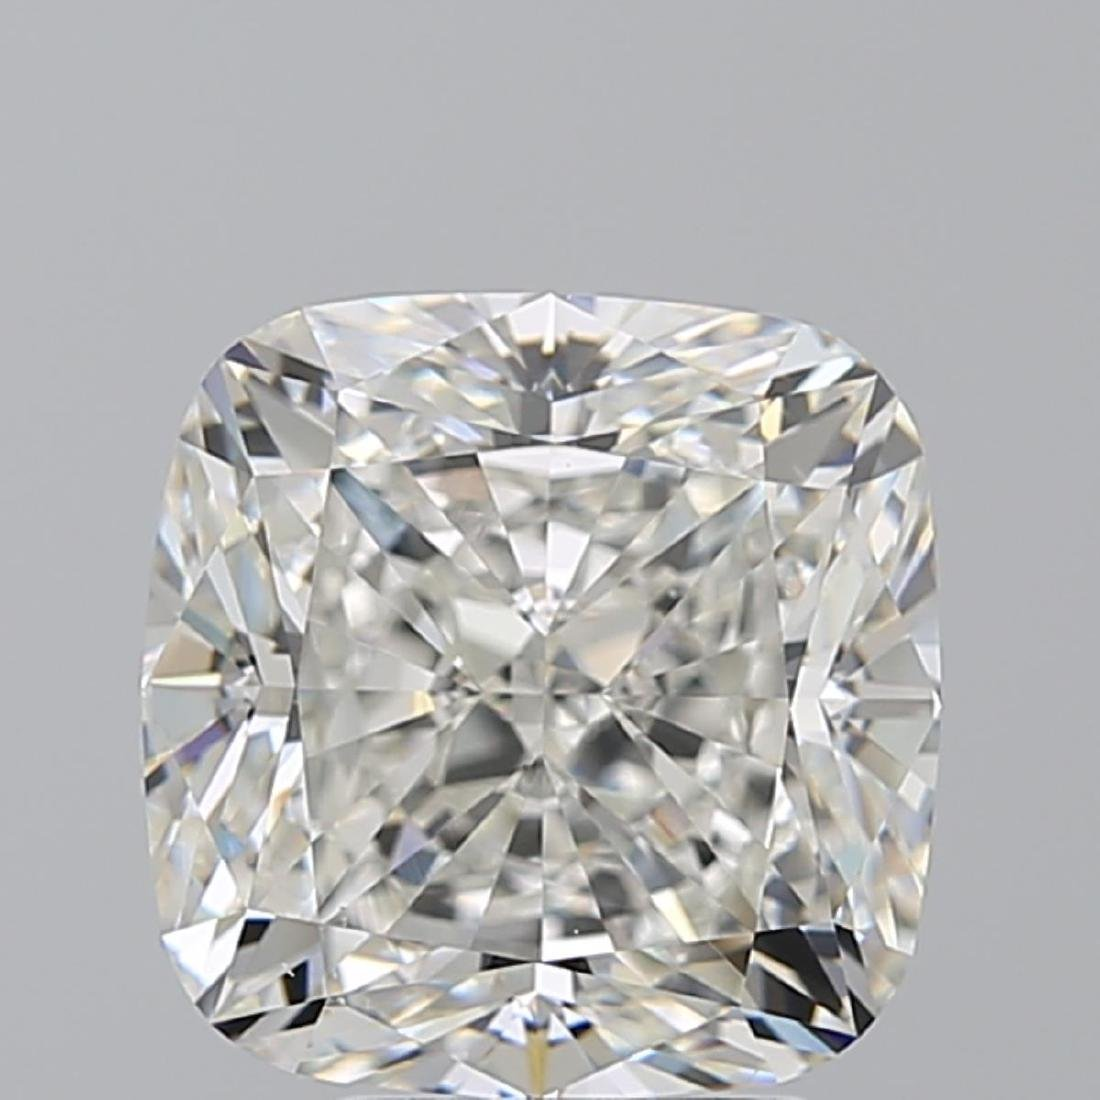 5.01 ct, Color I/VS2, Cushion cut Diamond - 2